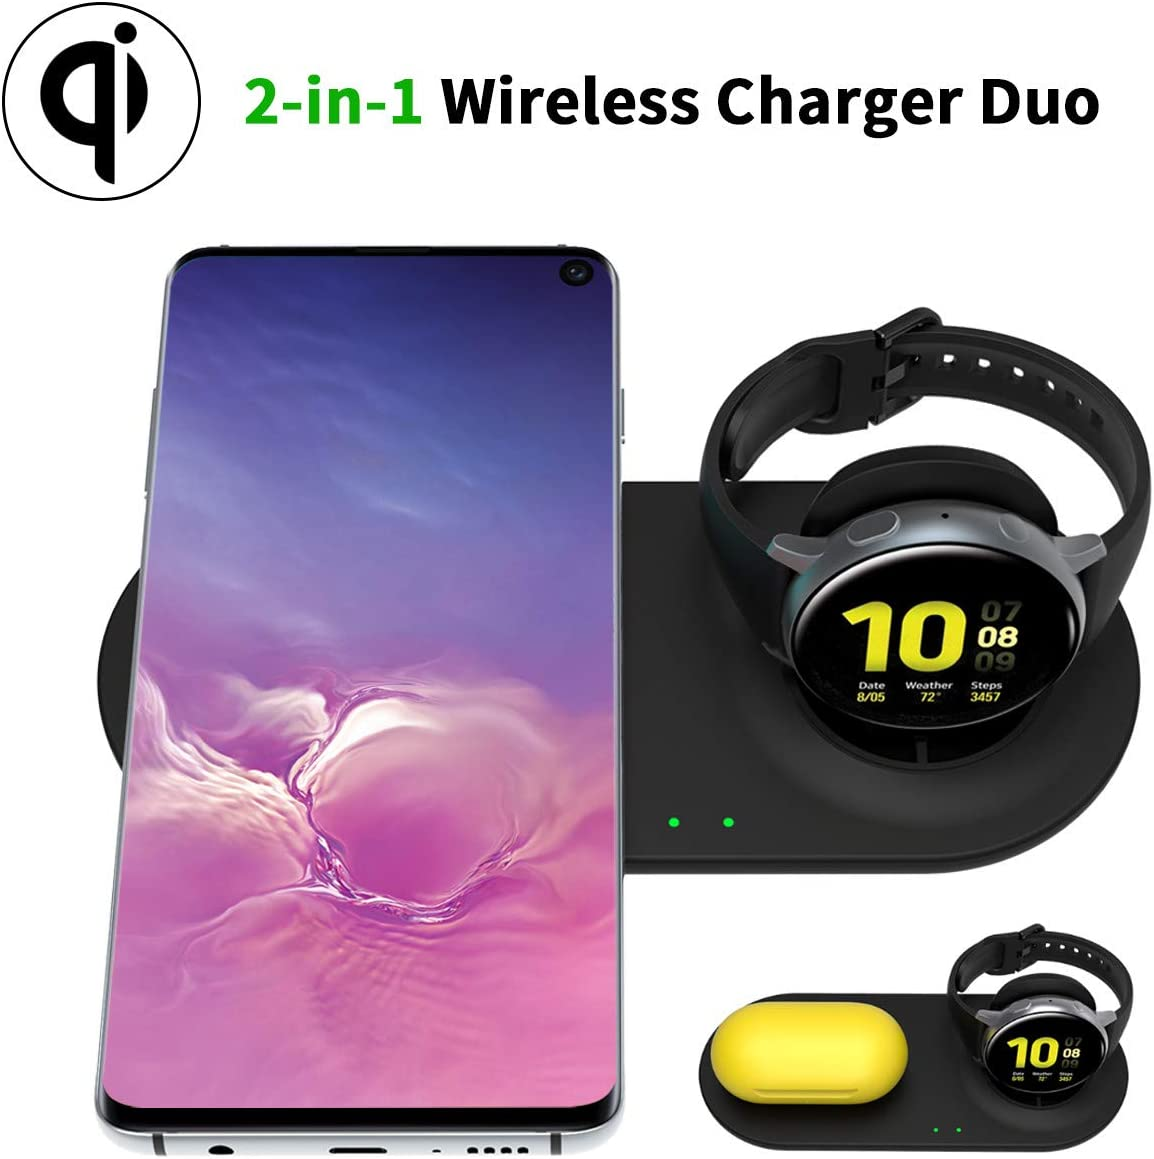 HATALKIN Qi-Certified Wireless Charger with Samsung Galaxy Watch Charging Pad and Phone Charger,for Galaxy Watch 42mm 46mm Active 2 Gear S3 / Z Flip/Airpods Pro / S20 Ultra ect.Samsung Android Phone